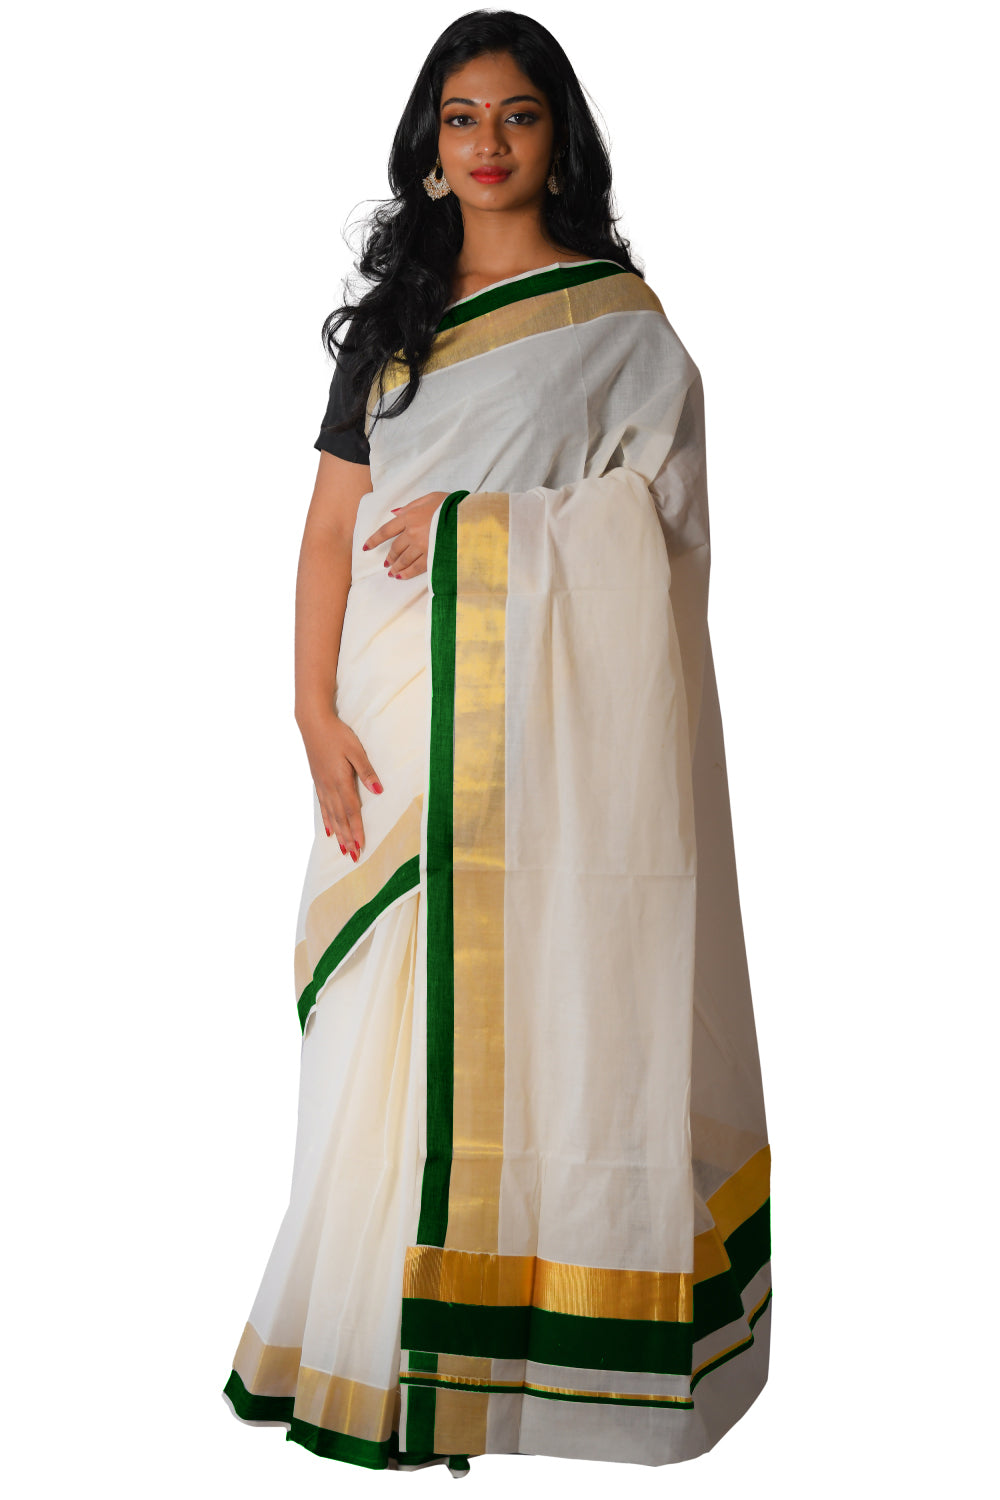 Kerala Kasavu Dark Green Colour Border Saree